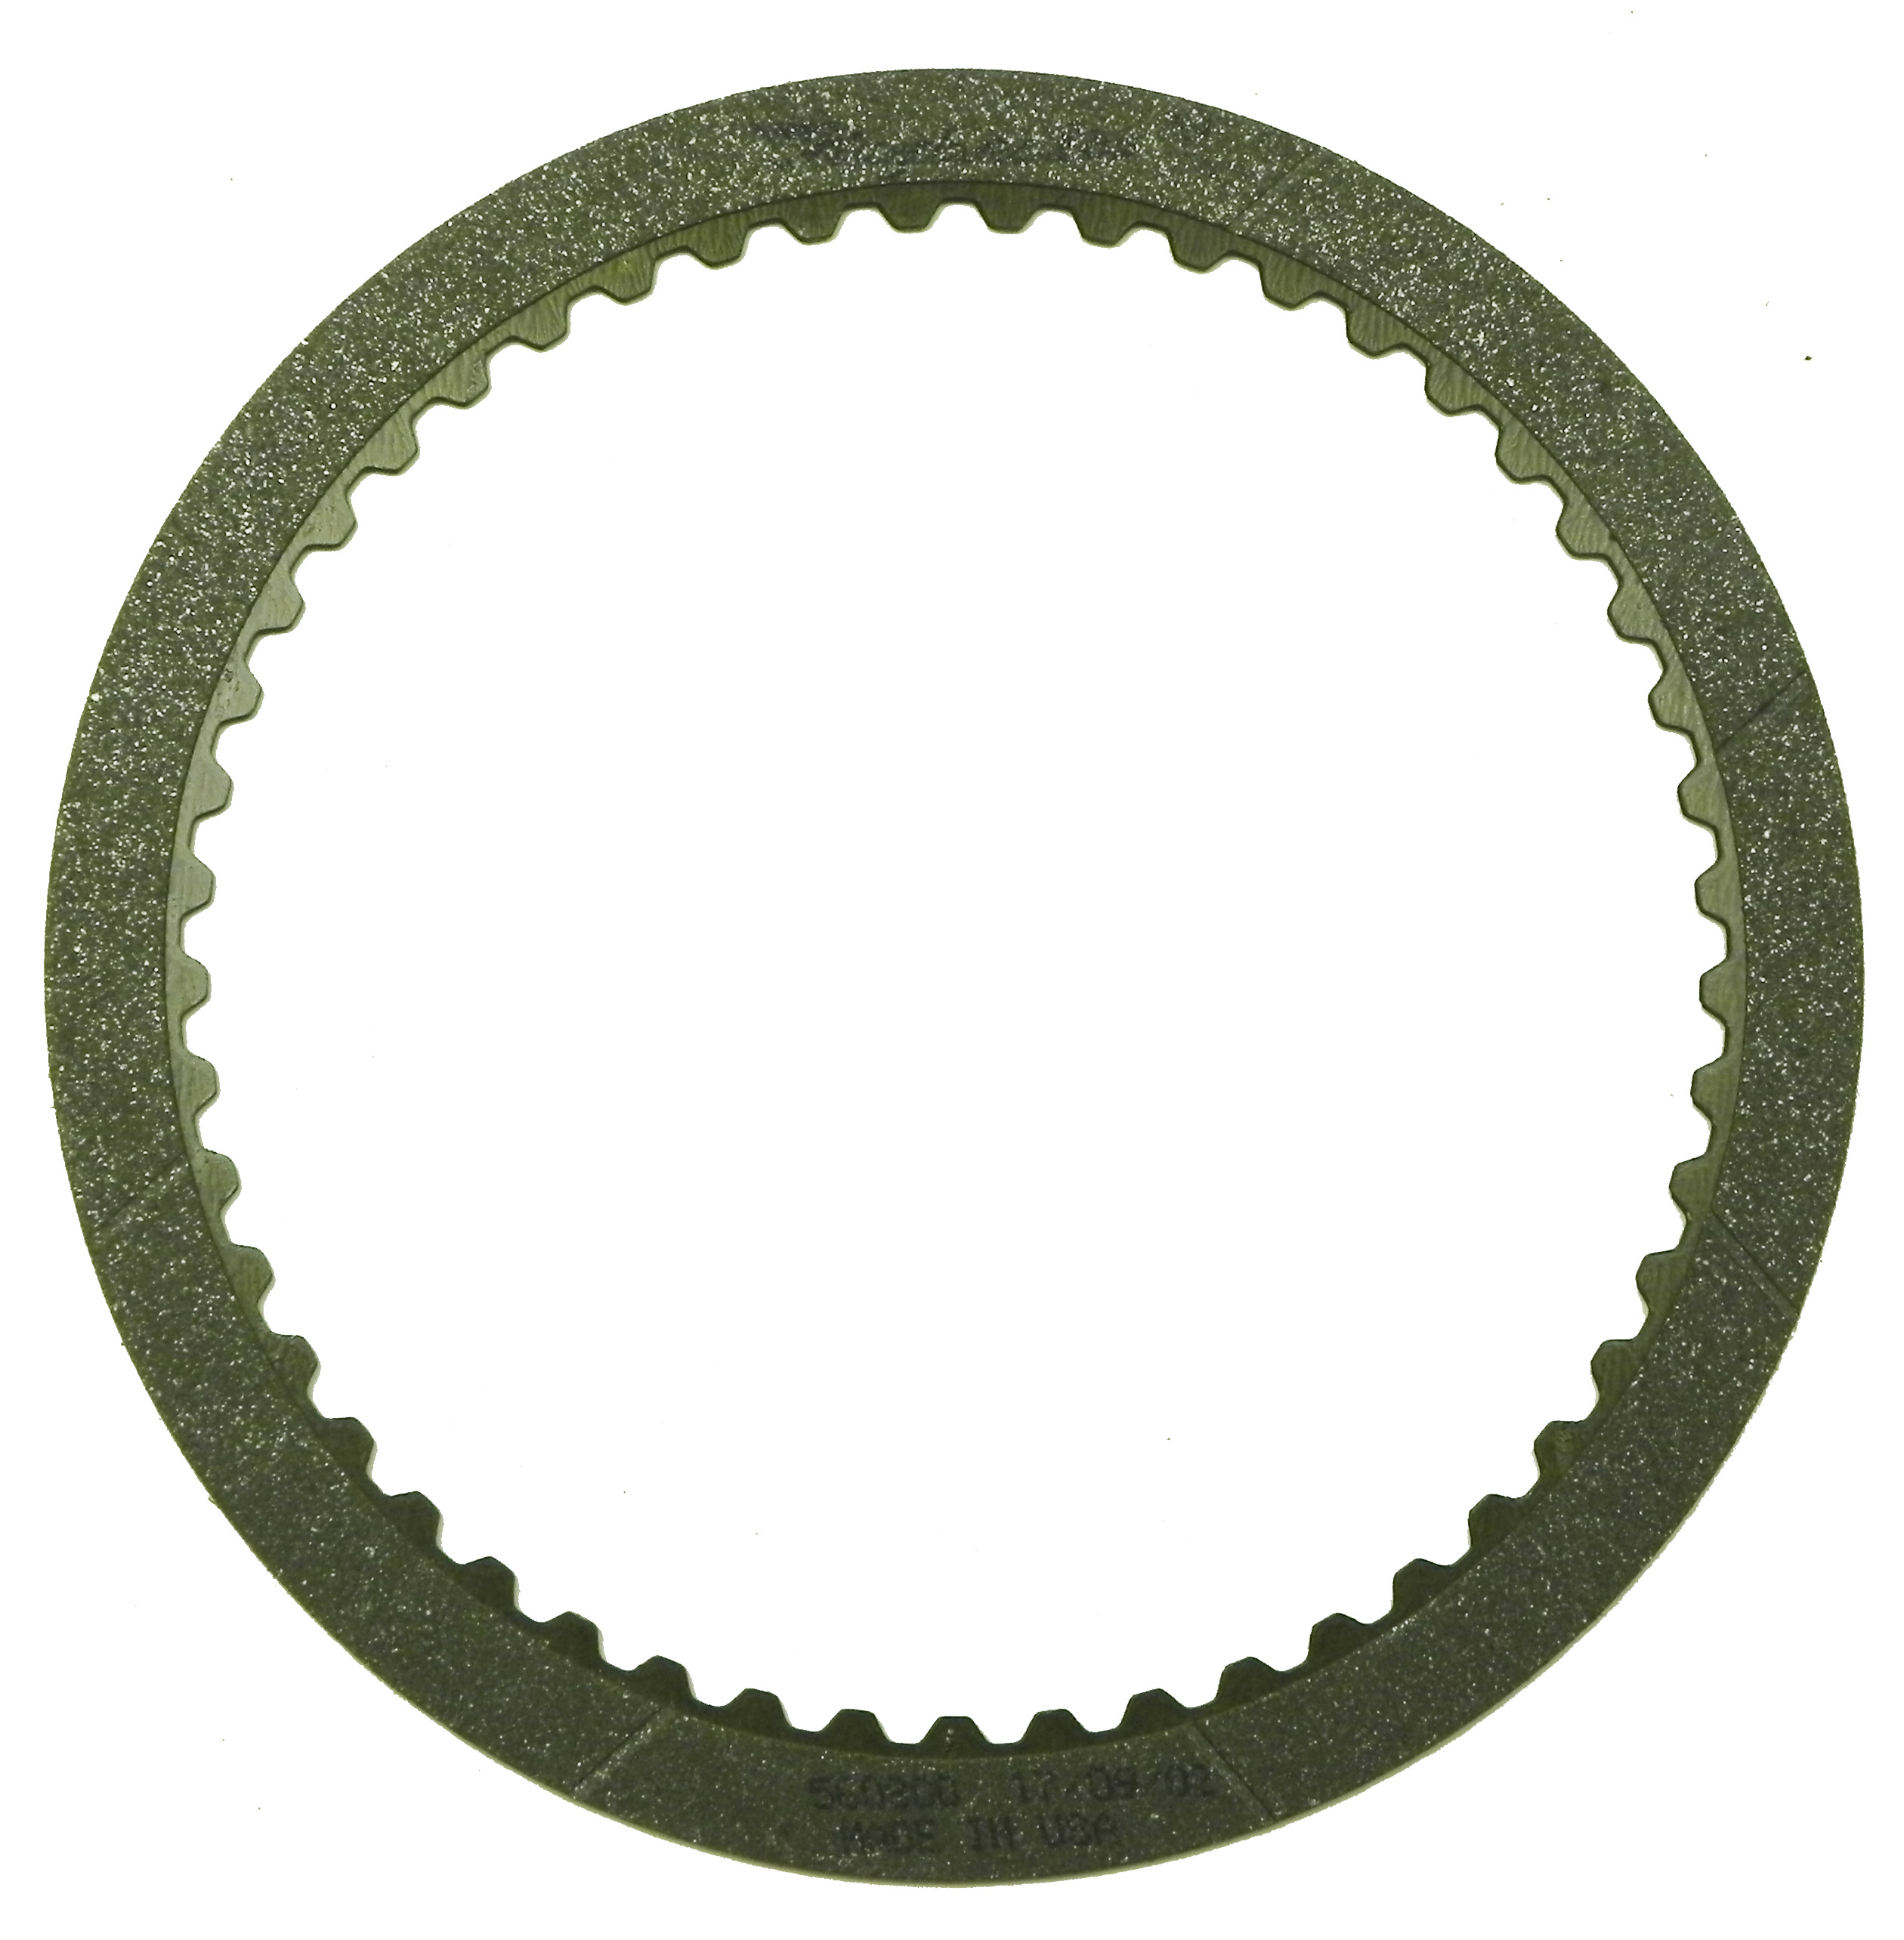 R560800 | 1981-2001 Friction Clutch Plate Graphitic Forward Graphitic